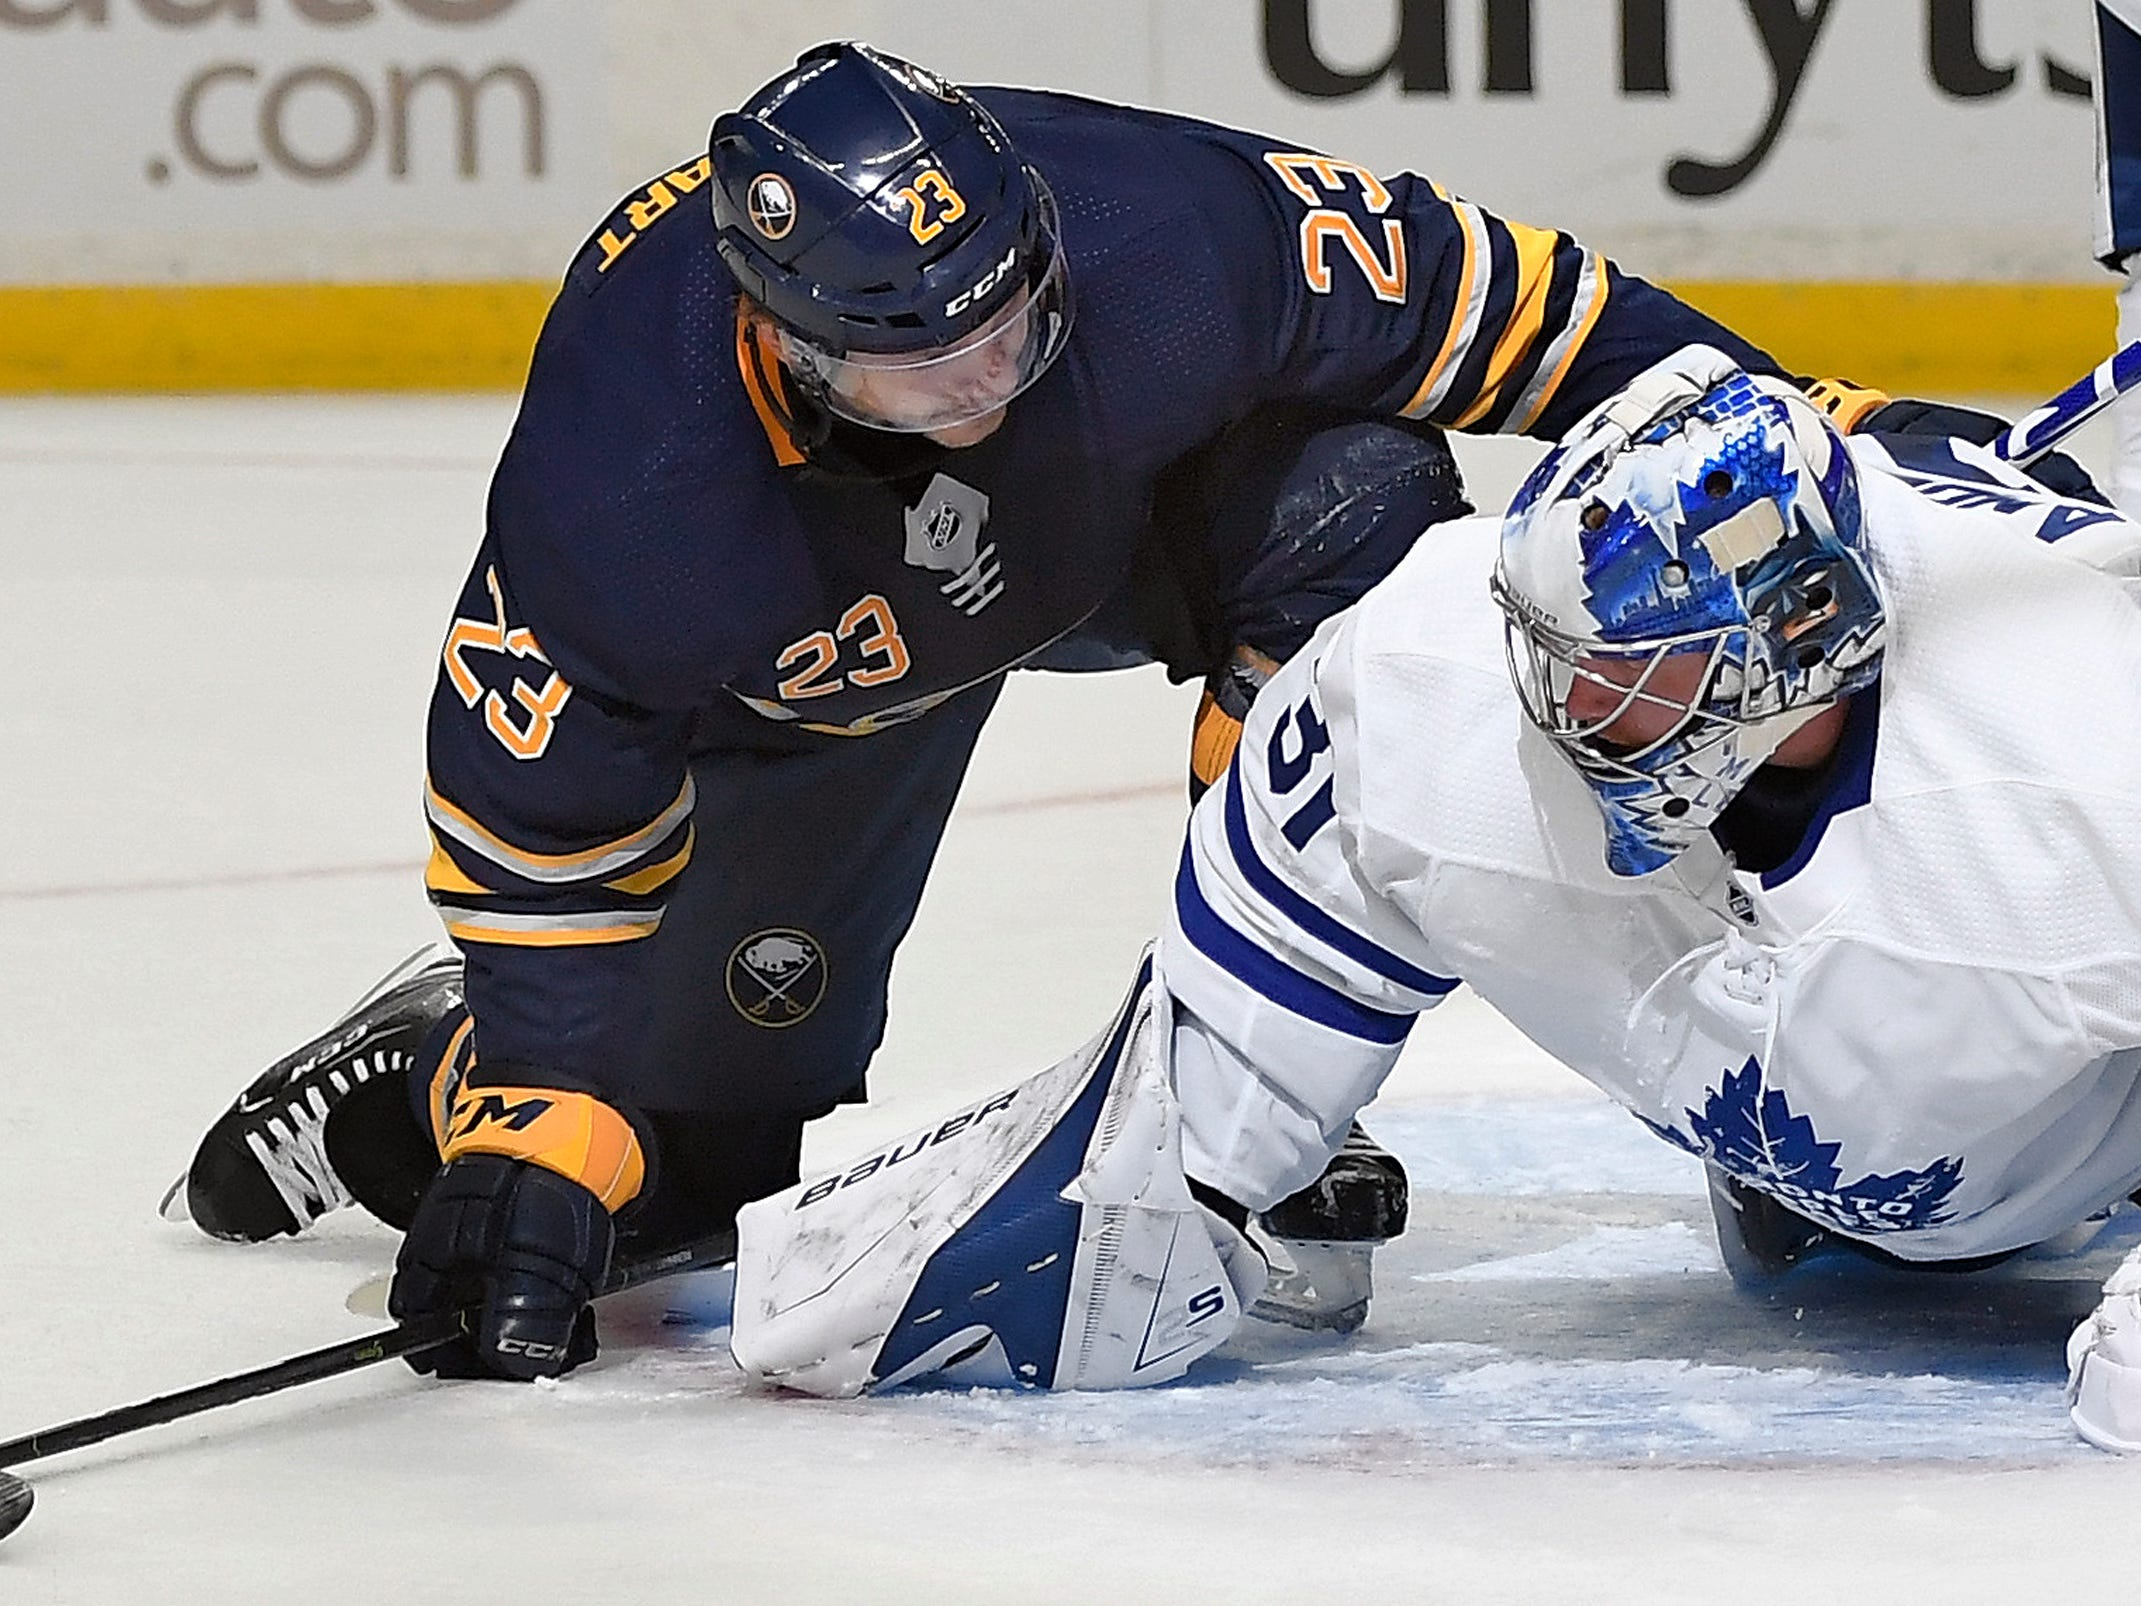 Sept. 22: Buffalo Sabres center Sam Reinhart checks on Toronto Maple Leafs goalie Frederik Andersen after a pileup in front of the net.